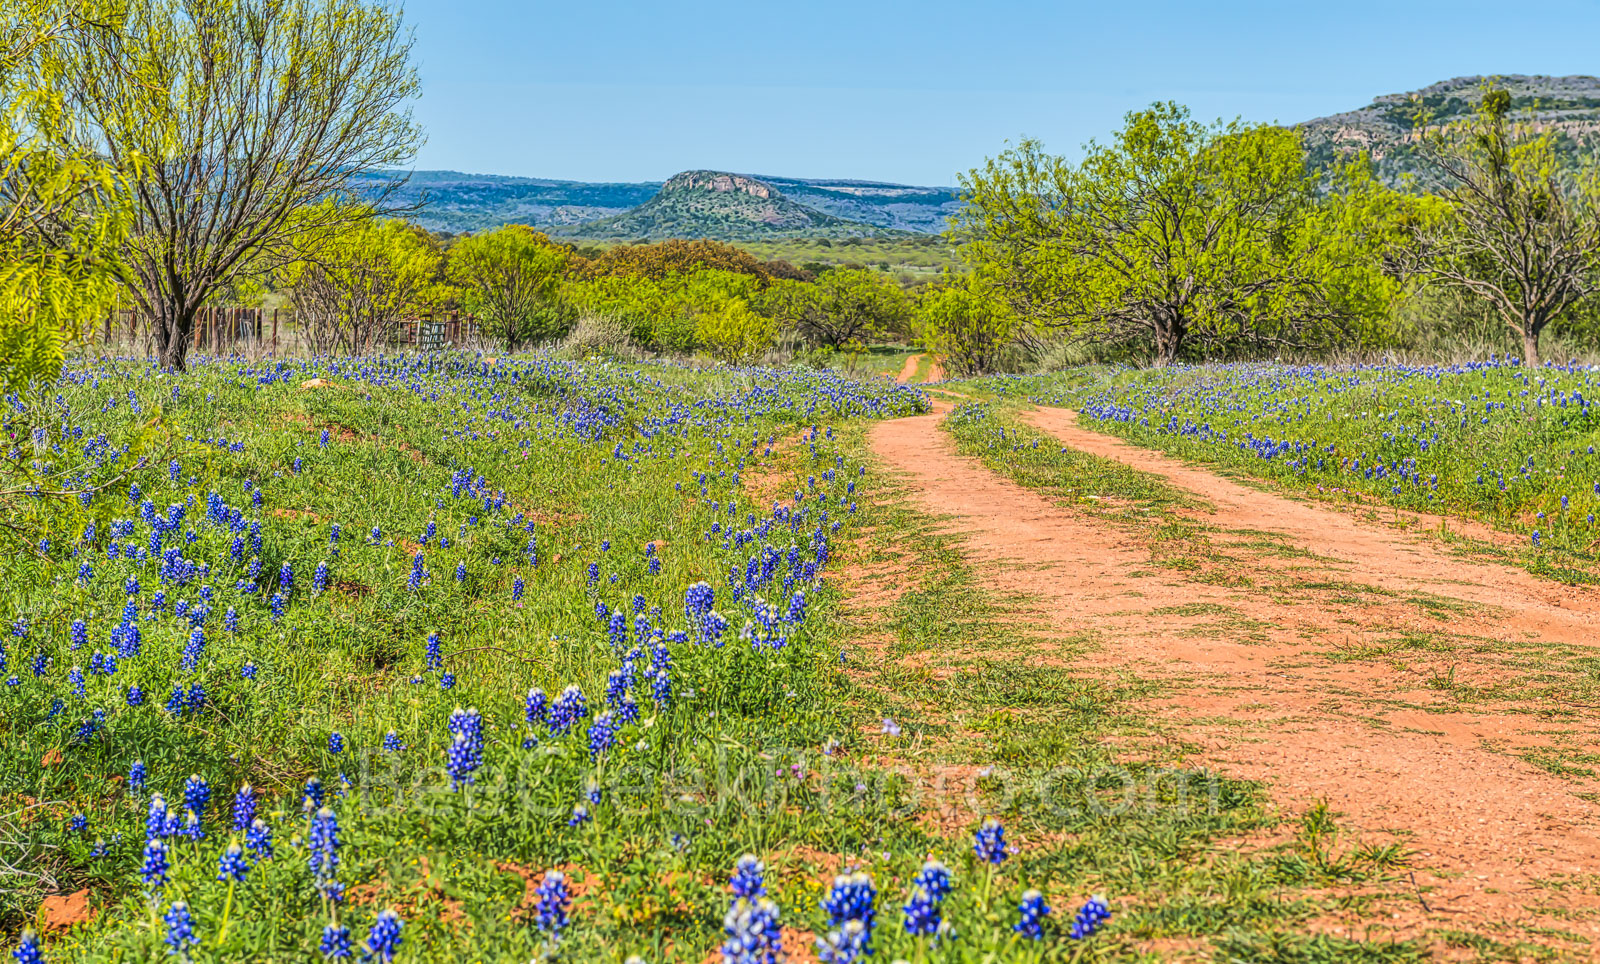 Bluebonnets, Willow City Loop, Texas hill country, dirt road, wildflowers, hills, , photo